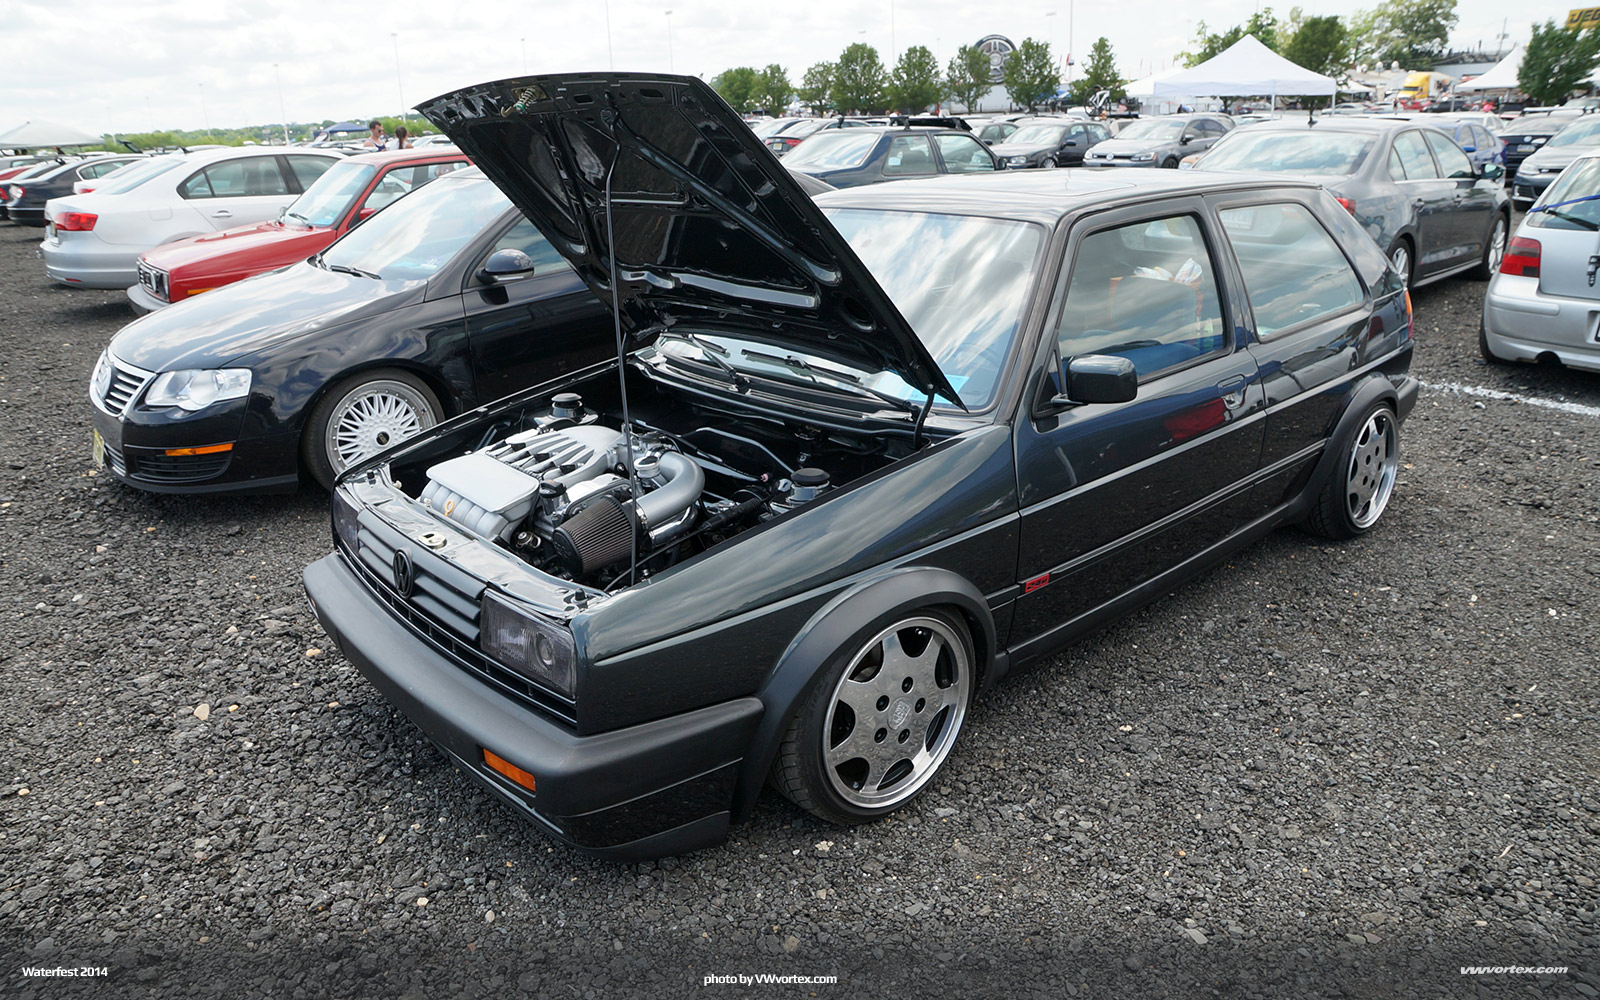 2014-waterfest-vw-audi-590